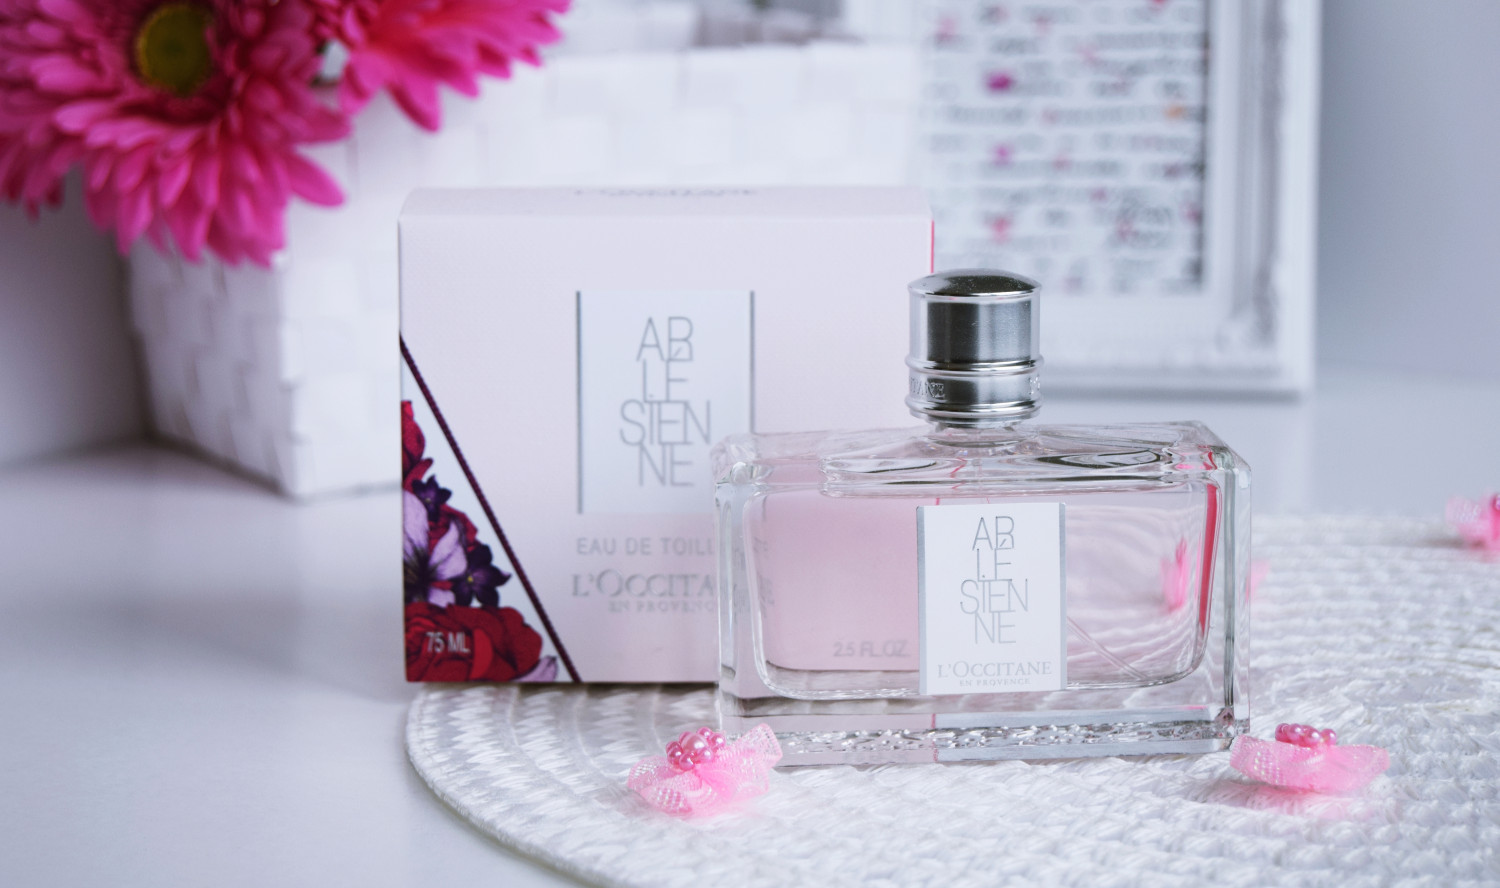 L'Occitane_Arlésienne_eau_de_toilette_review_Zalabell_beauty_3